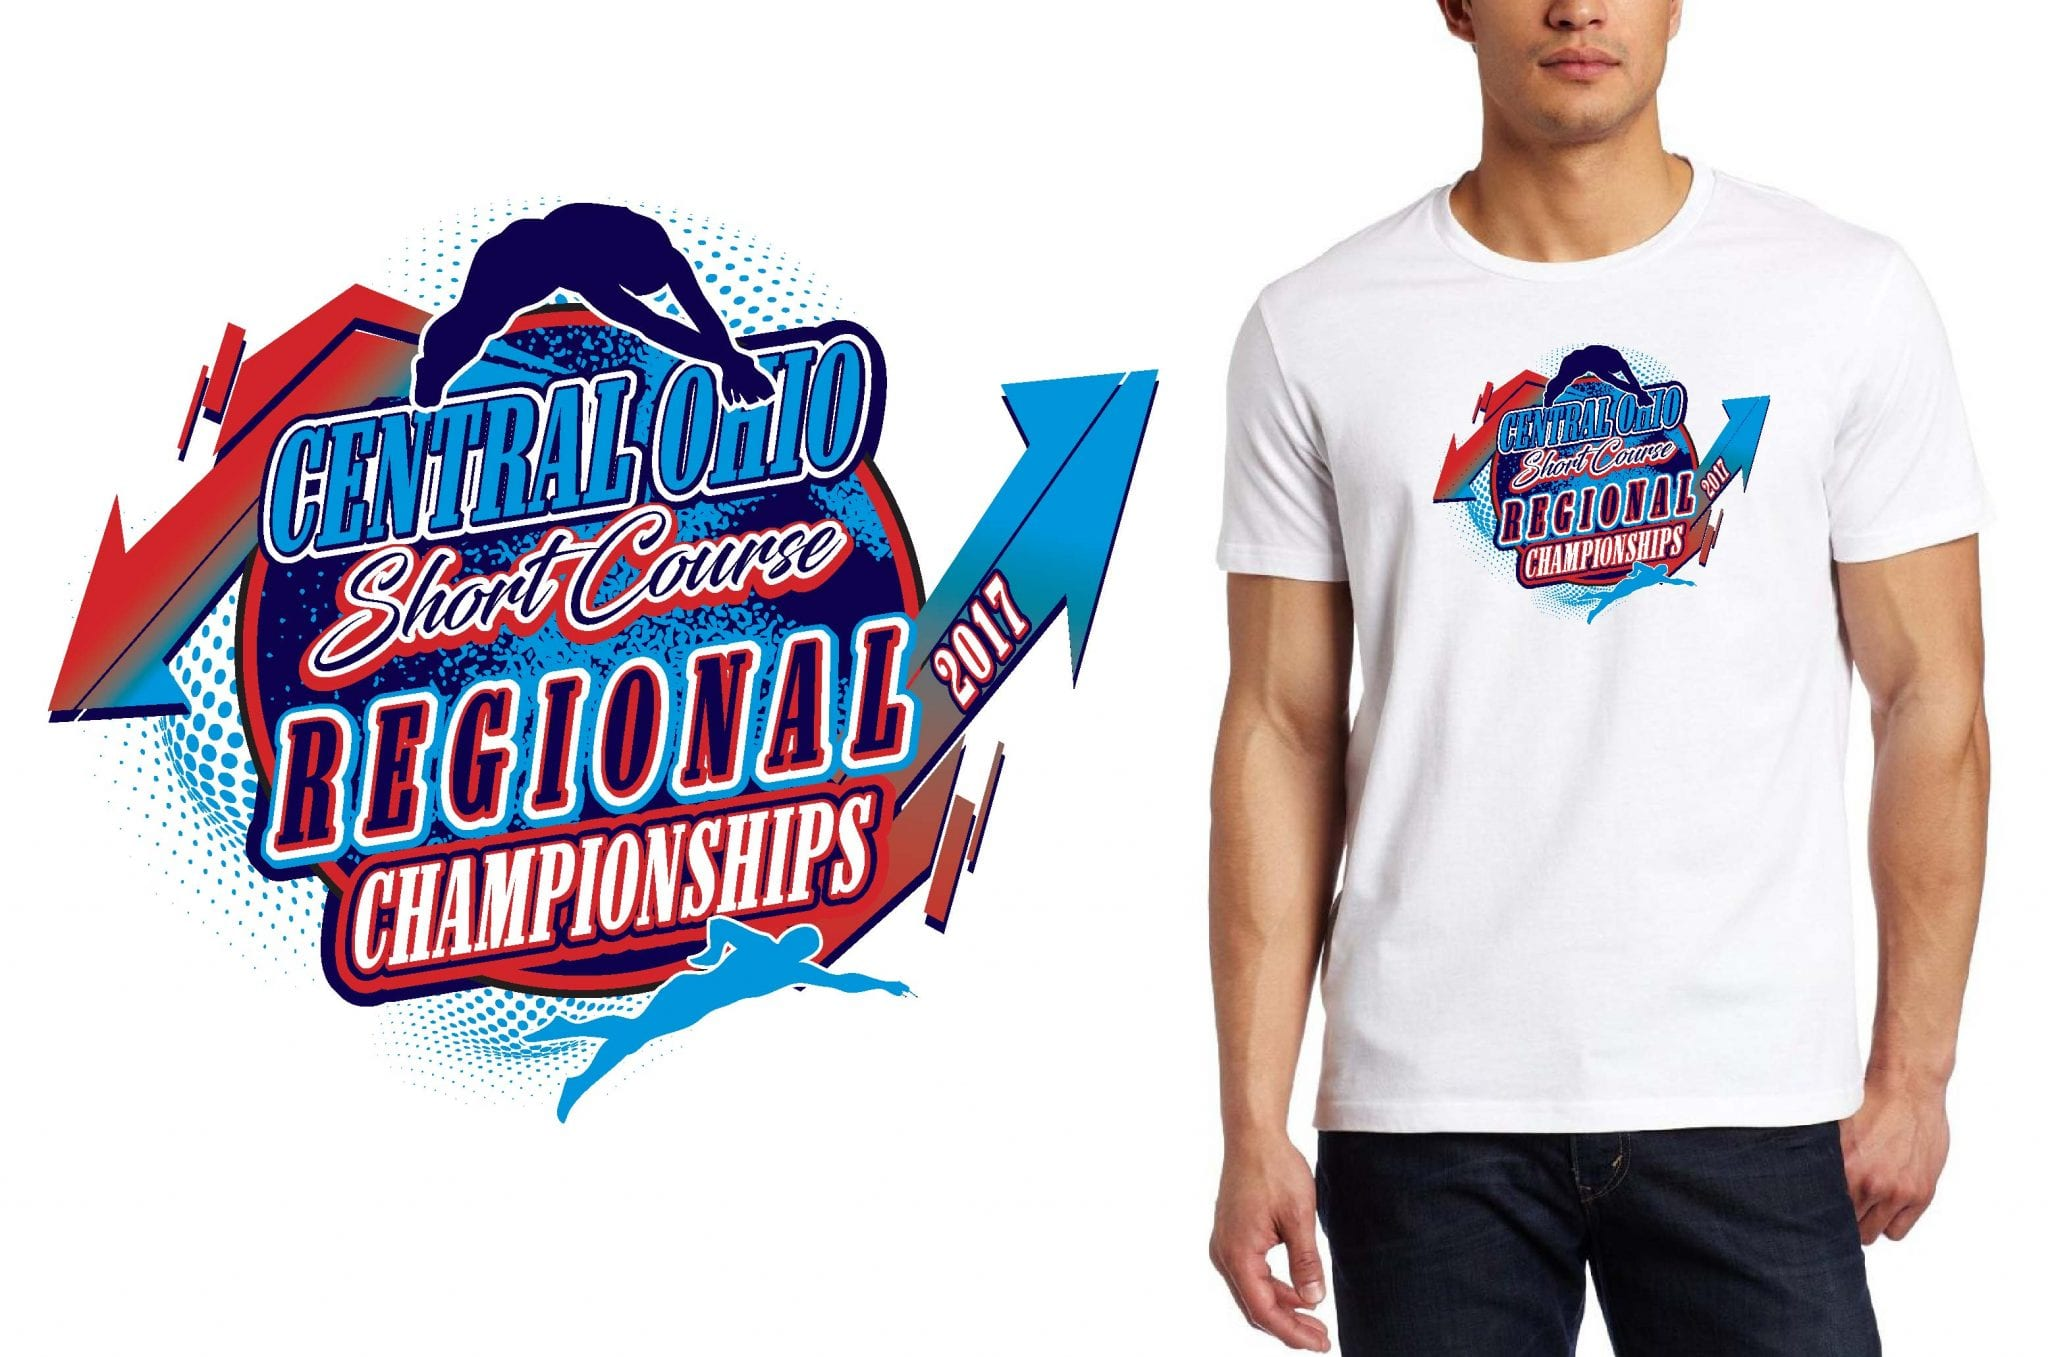 SWIMMING T SHIRT LOGO DESIGN Central-Ohio-Short-Course-Regional-Championships BY UrArtStudio